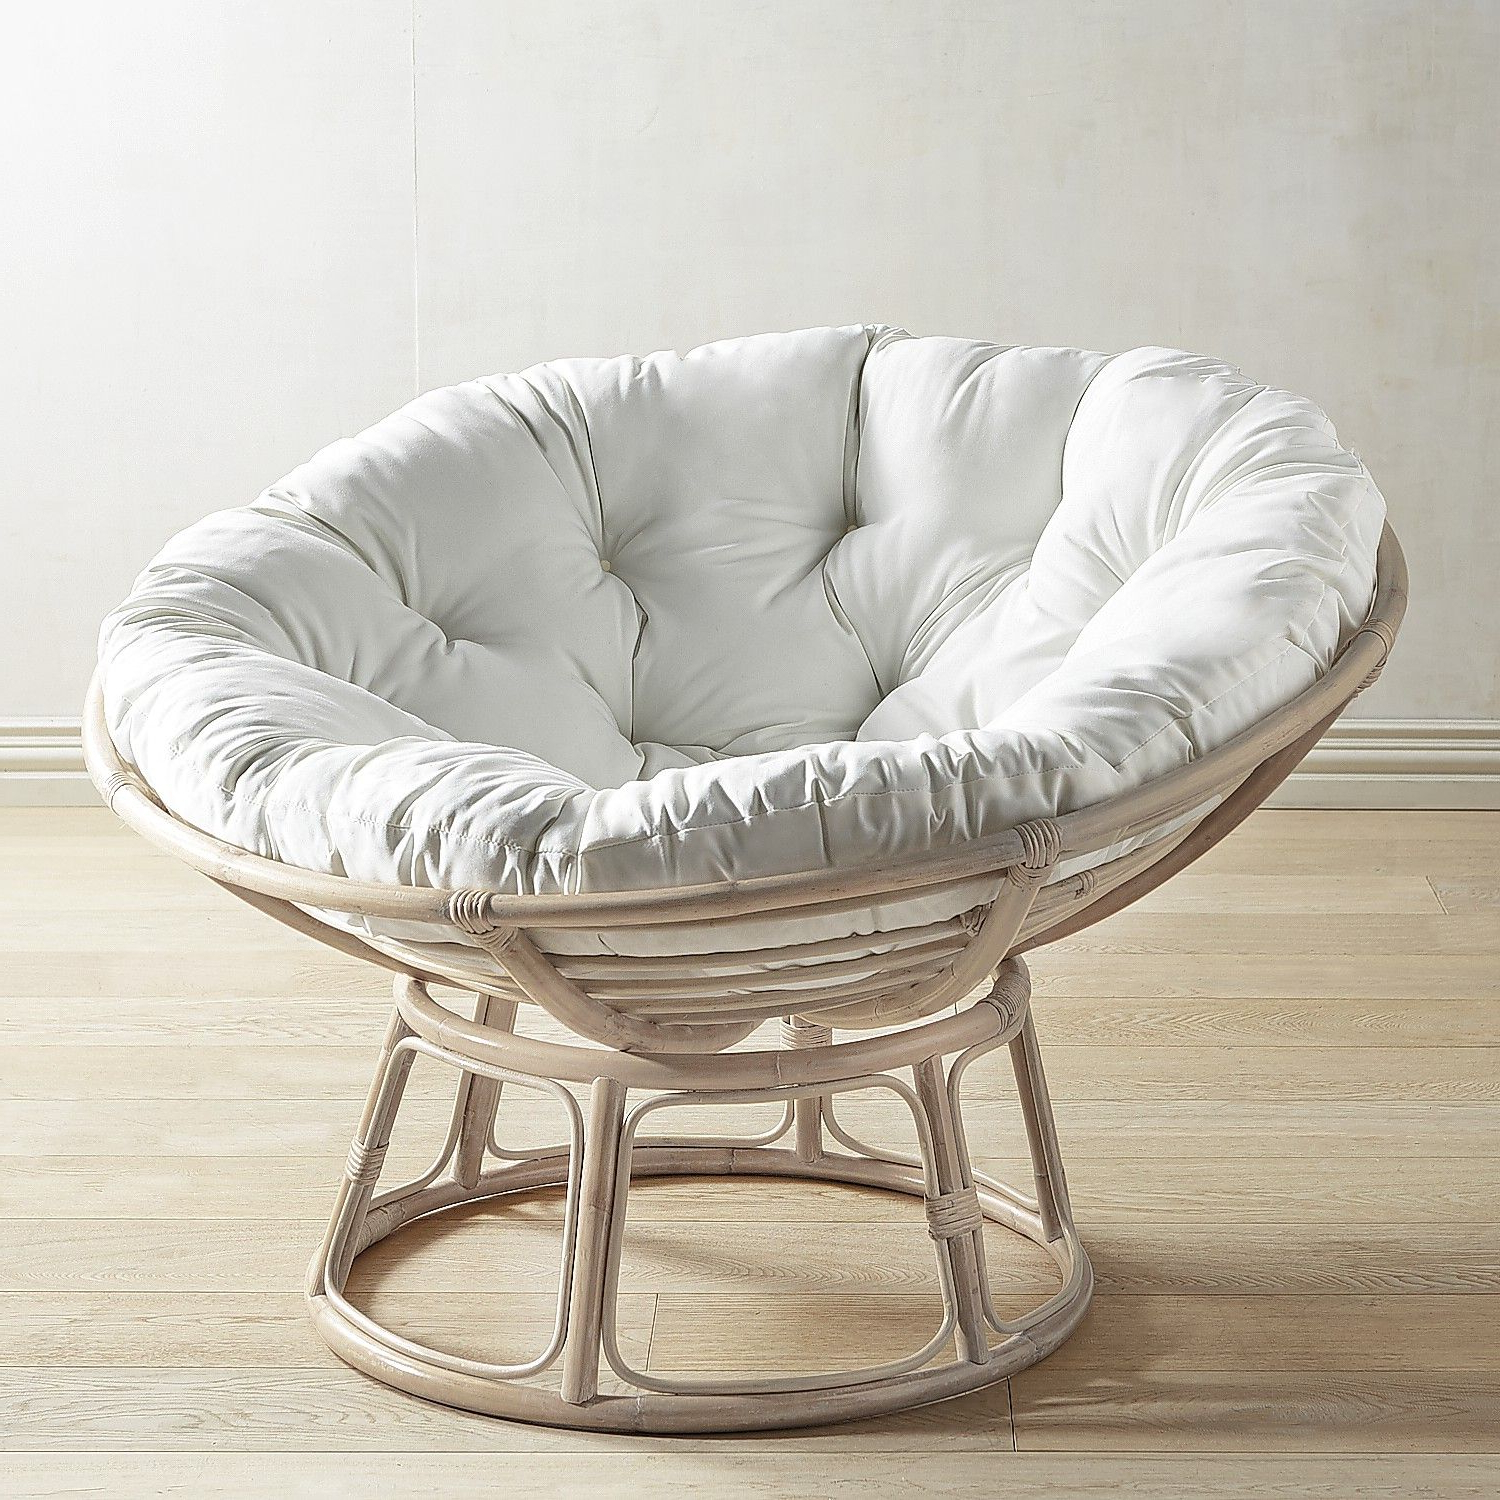 Decker Papasan Chairs With Best And Newest Papasan Whitewash Chair Frame Stone Wash #papasanchair (View 20 of 20)